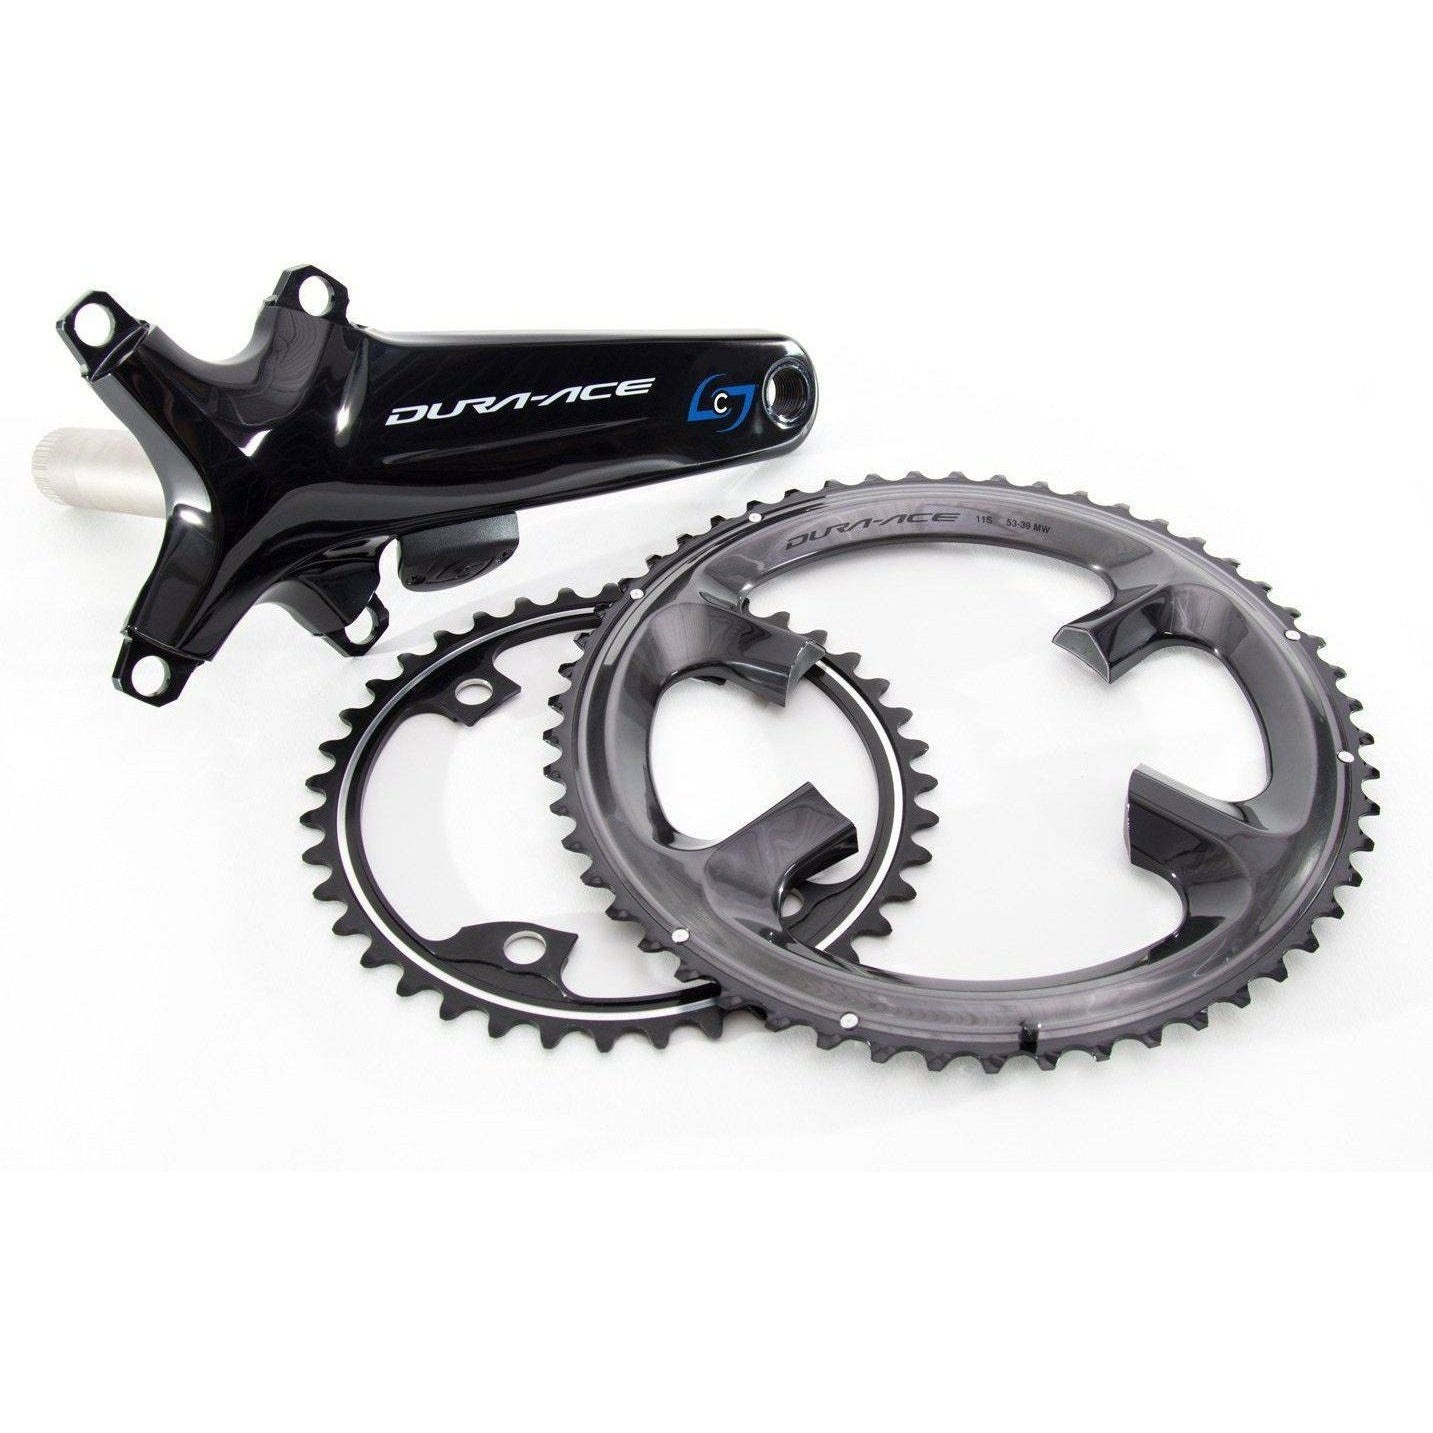 Stages-Stages Power R - Shimano Dura-Ace R9100--saddleback-elite-performance-cycling